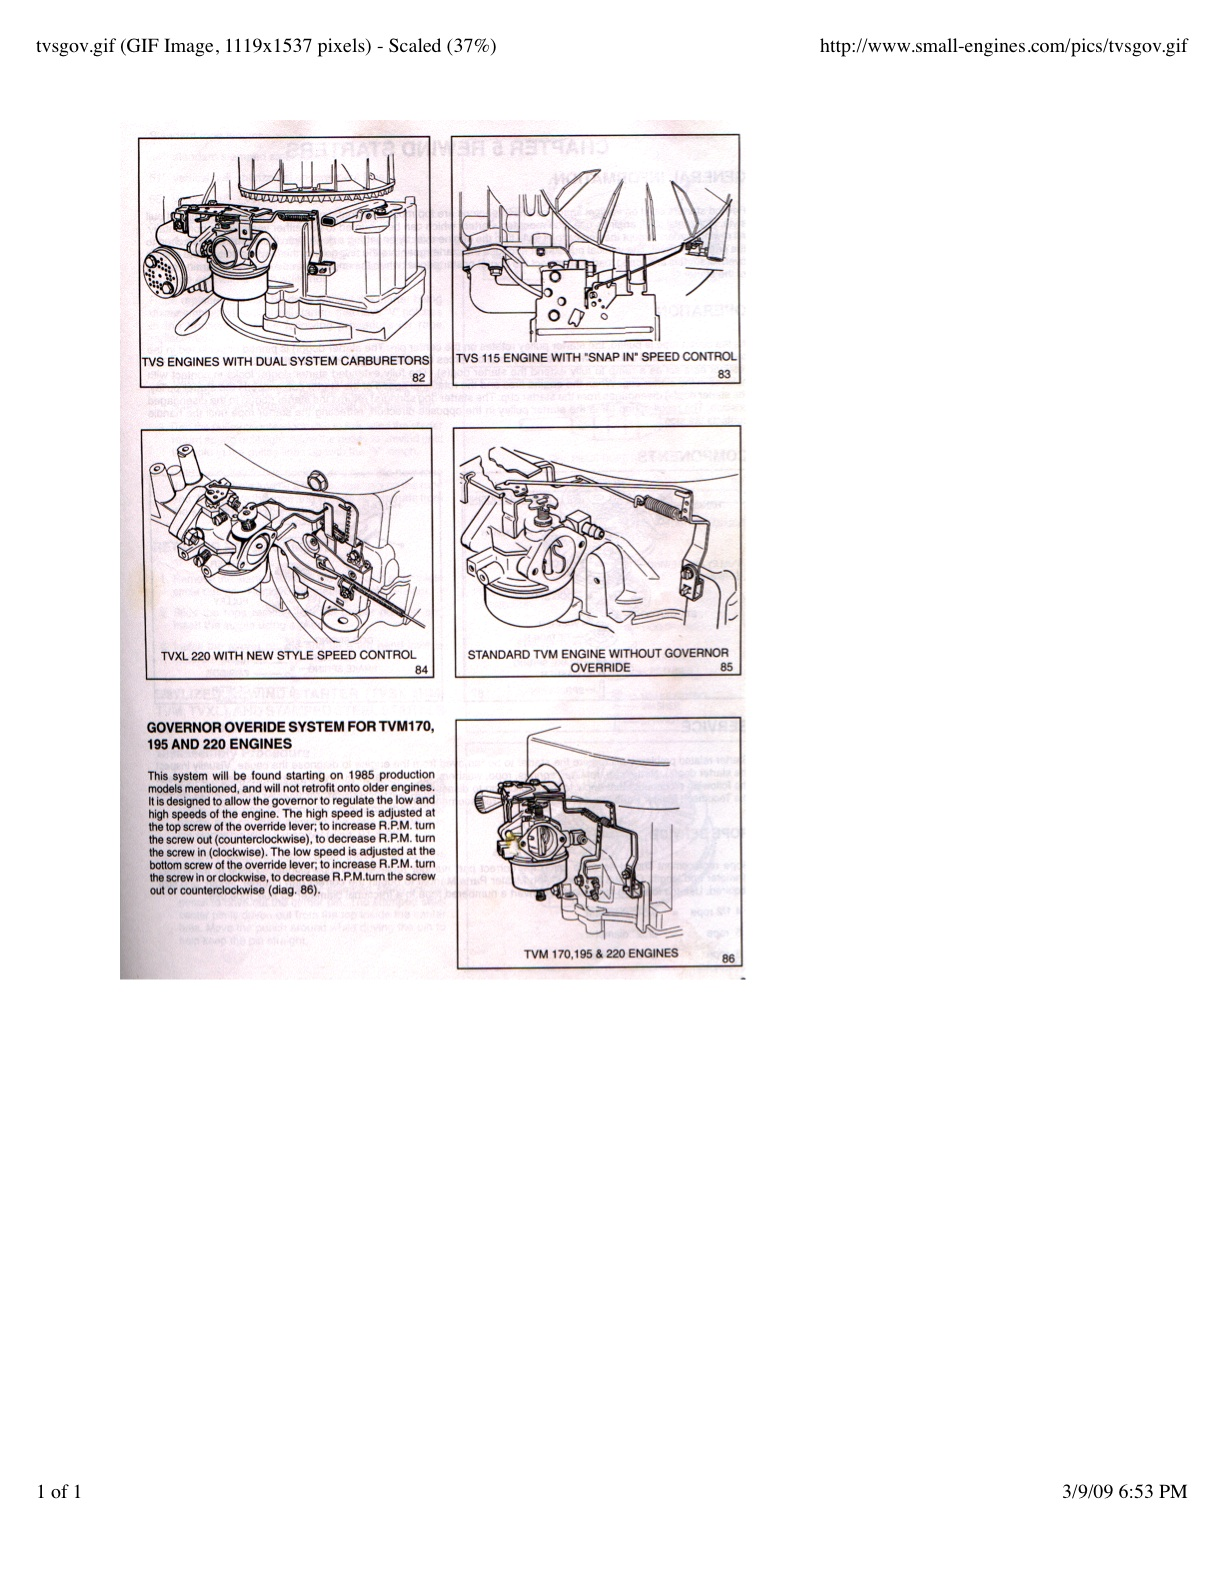 Small Engine Wiring Diagram Http Wwwjustanswercom Smallengine 10 Hp Briggs Carburetor Images Gallery Model Lev115 Stp185u1g1ra Removed Lawn Mower Carb And Got Mixed Up Rh Justanswer Com